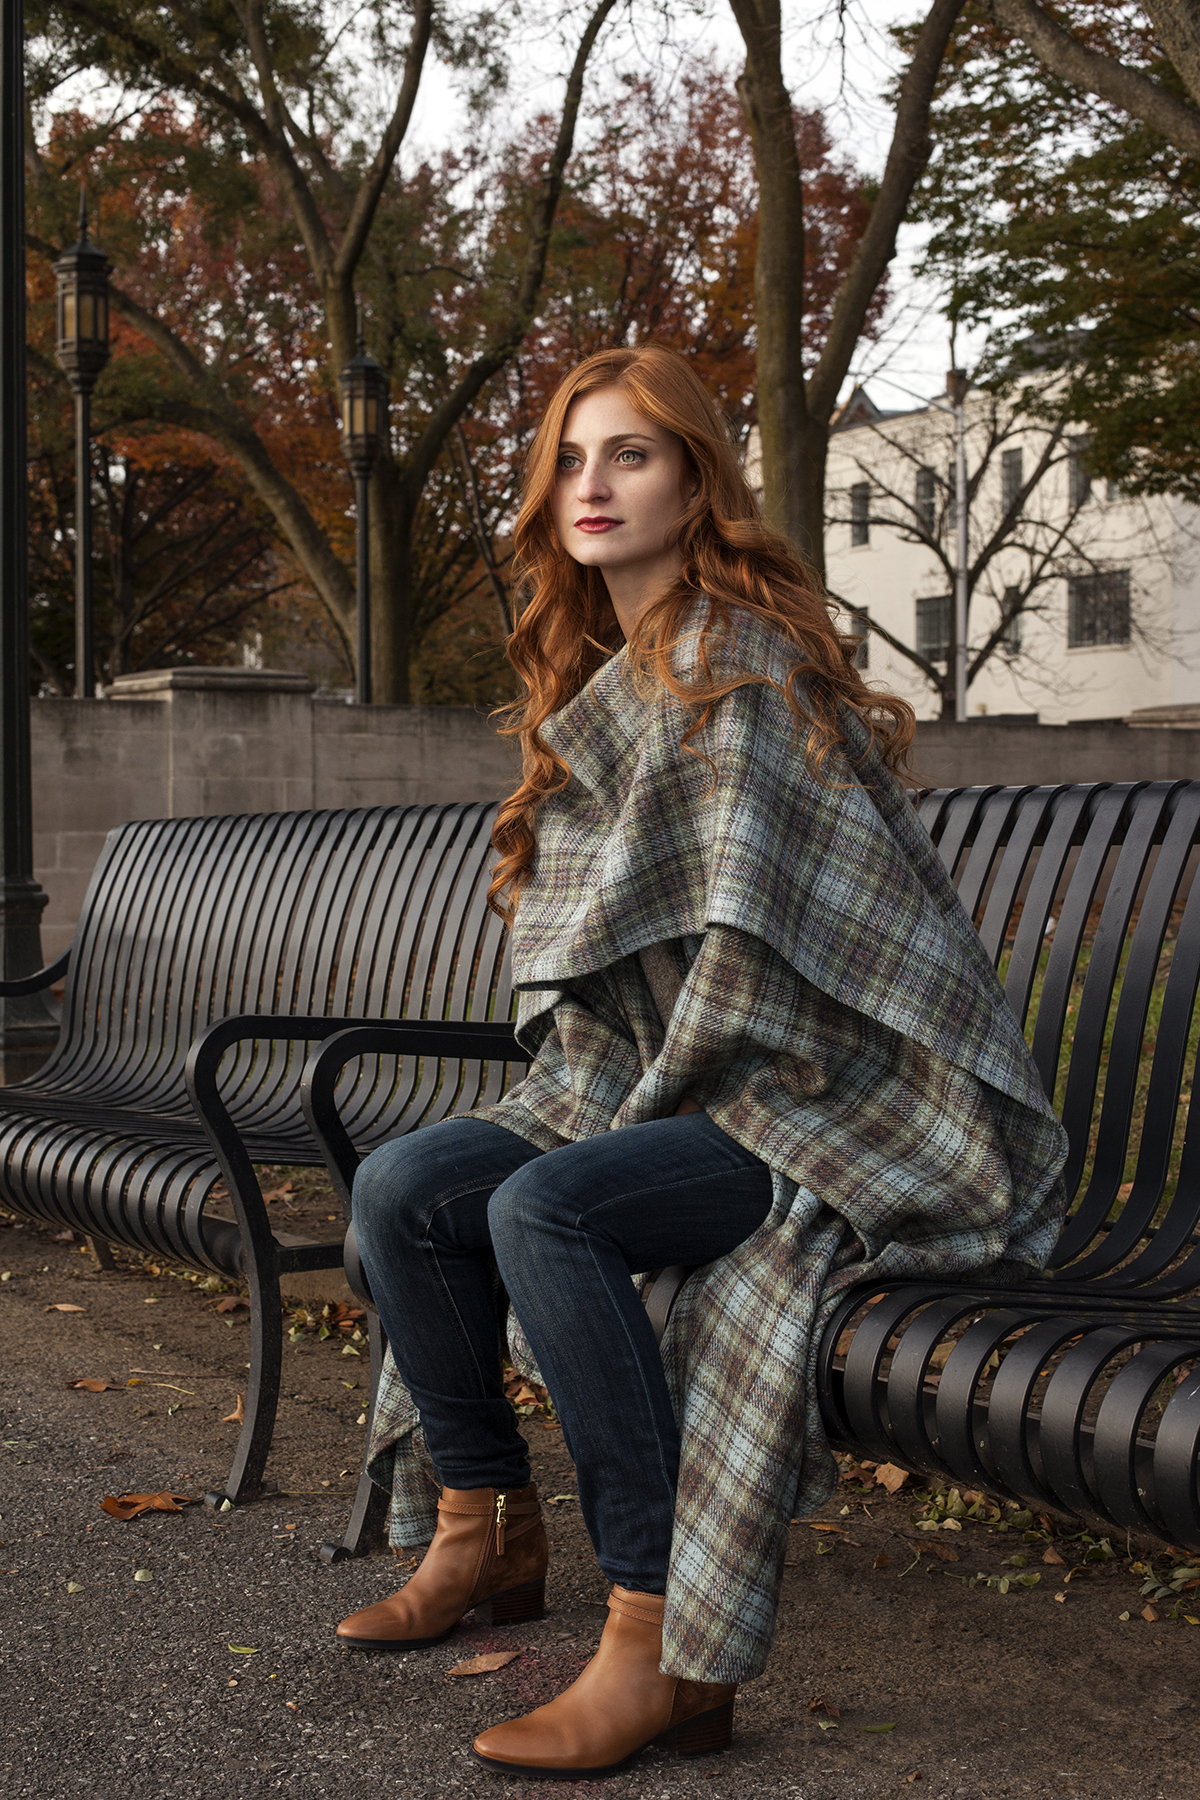 redhead girl sitting in blue and green poncho looking out